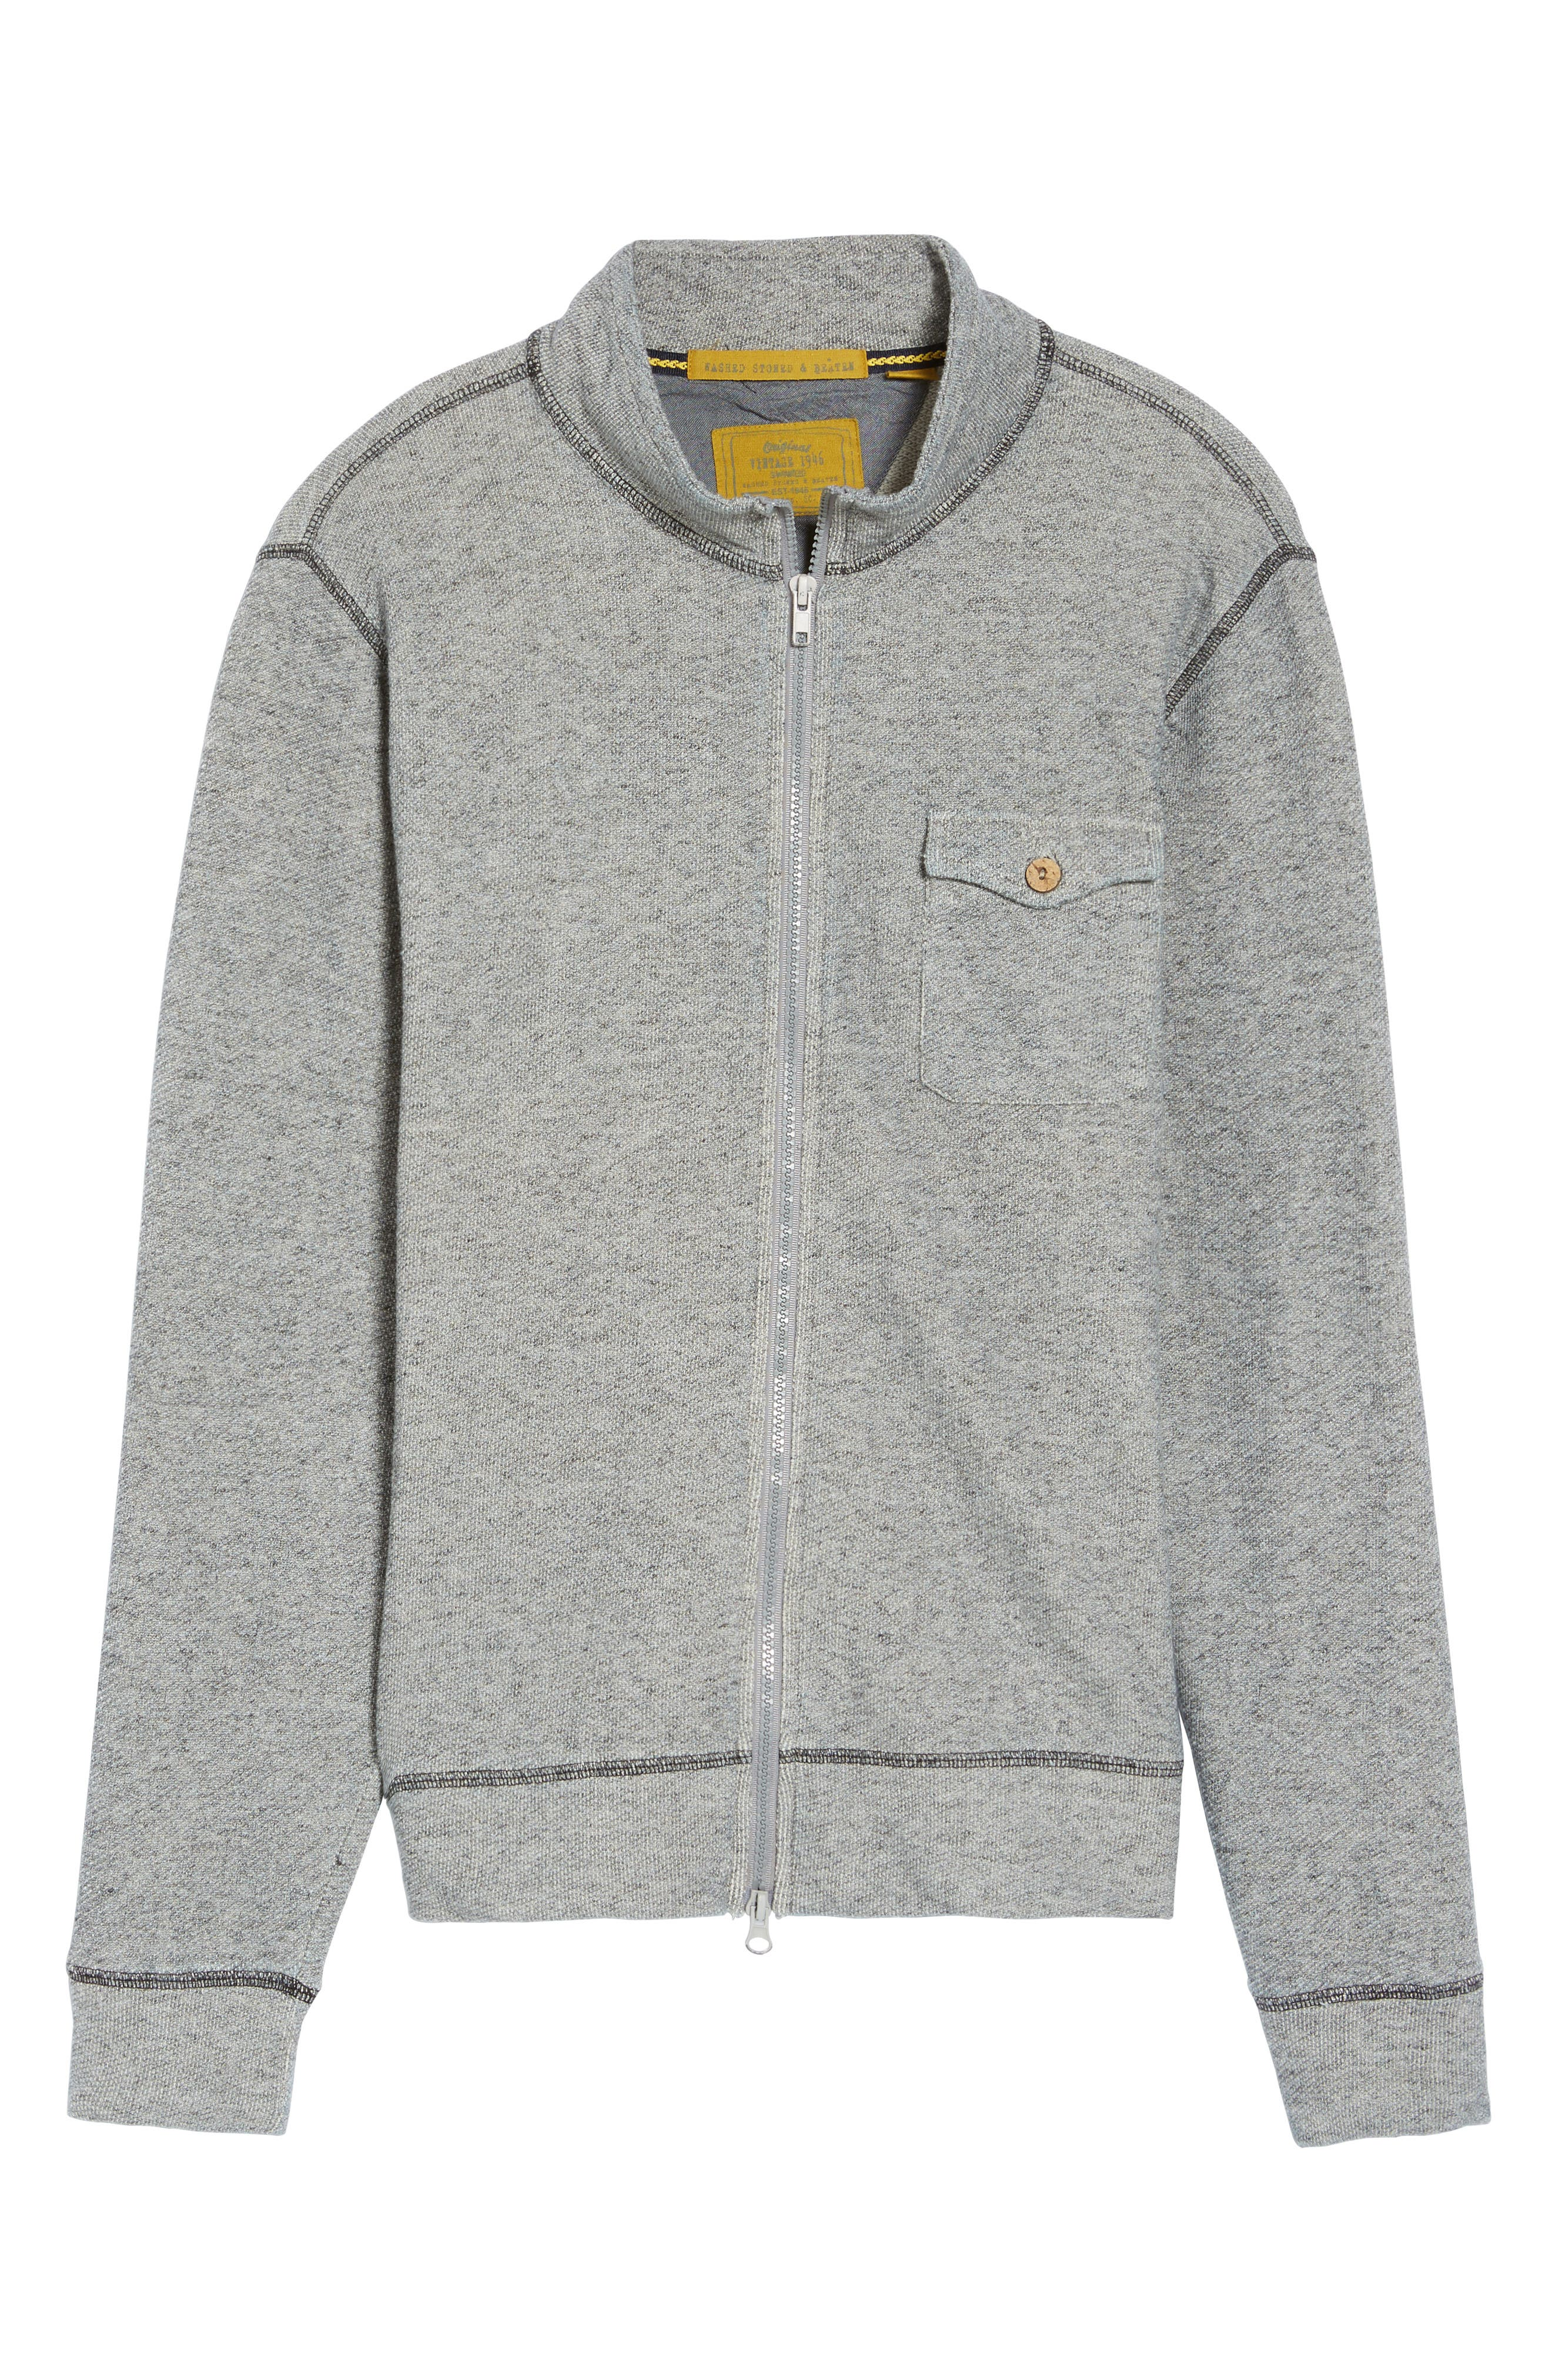 French Terry Zip Cardigan,                             Alternate thumbnail 6, color,                             020